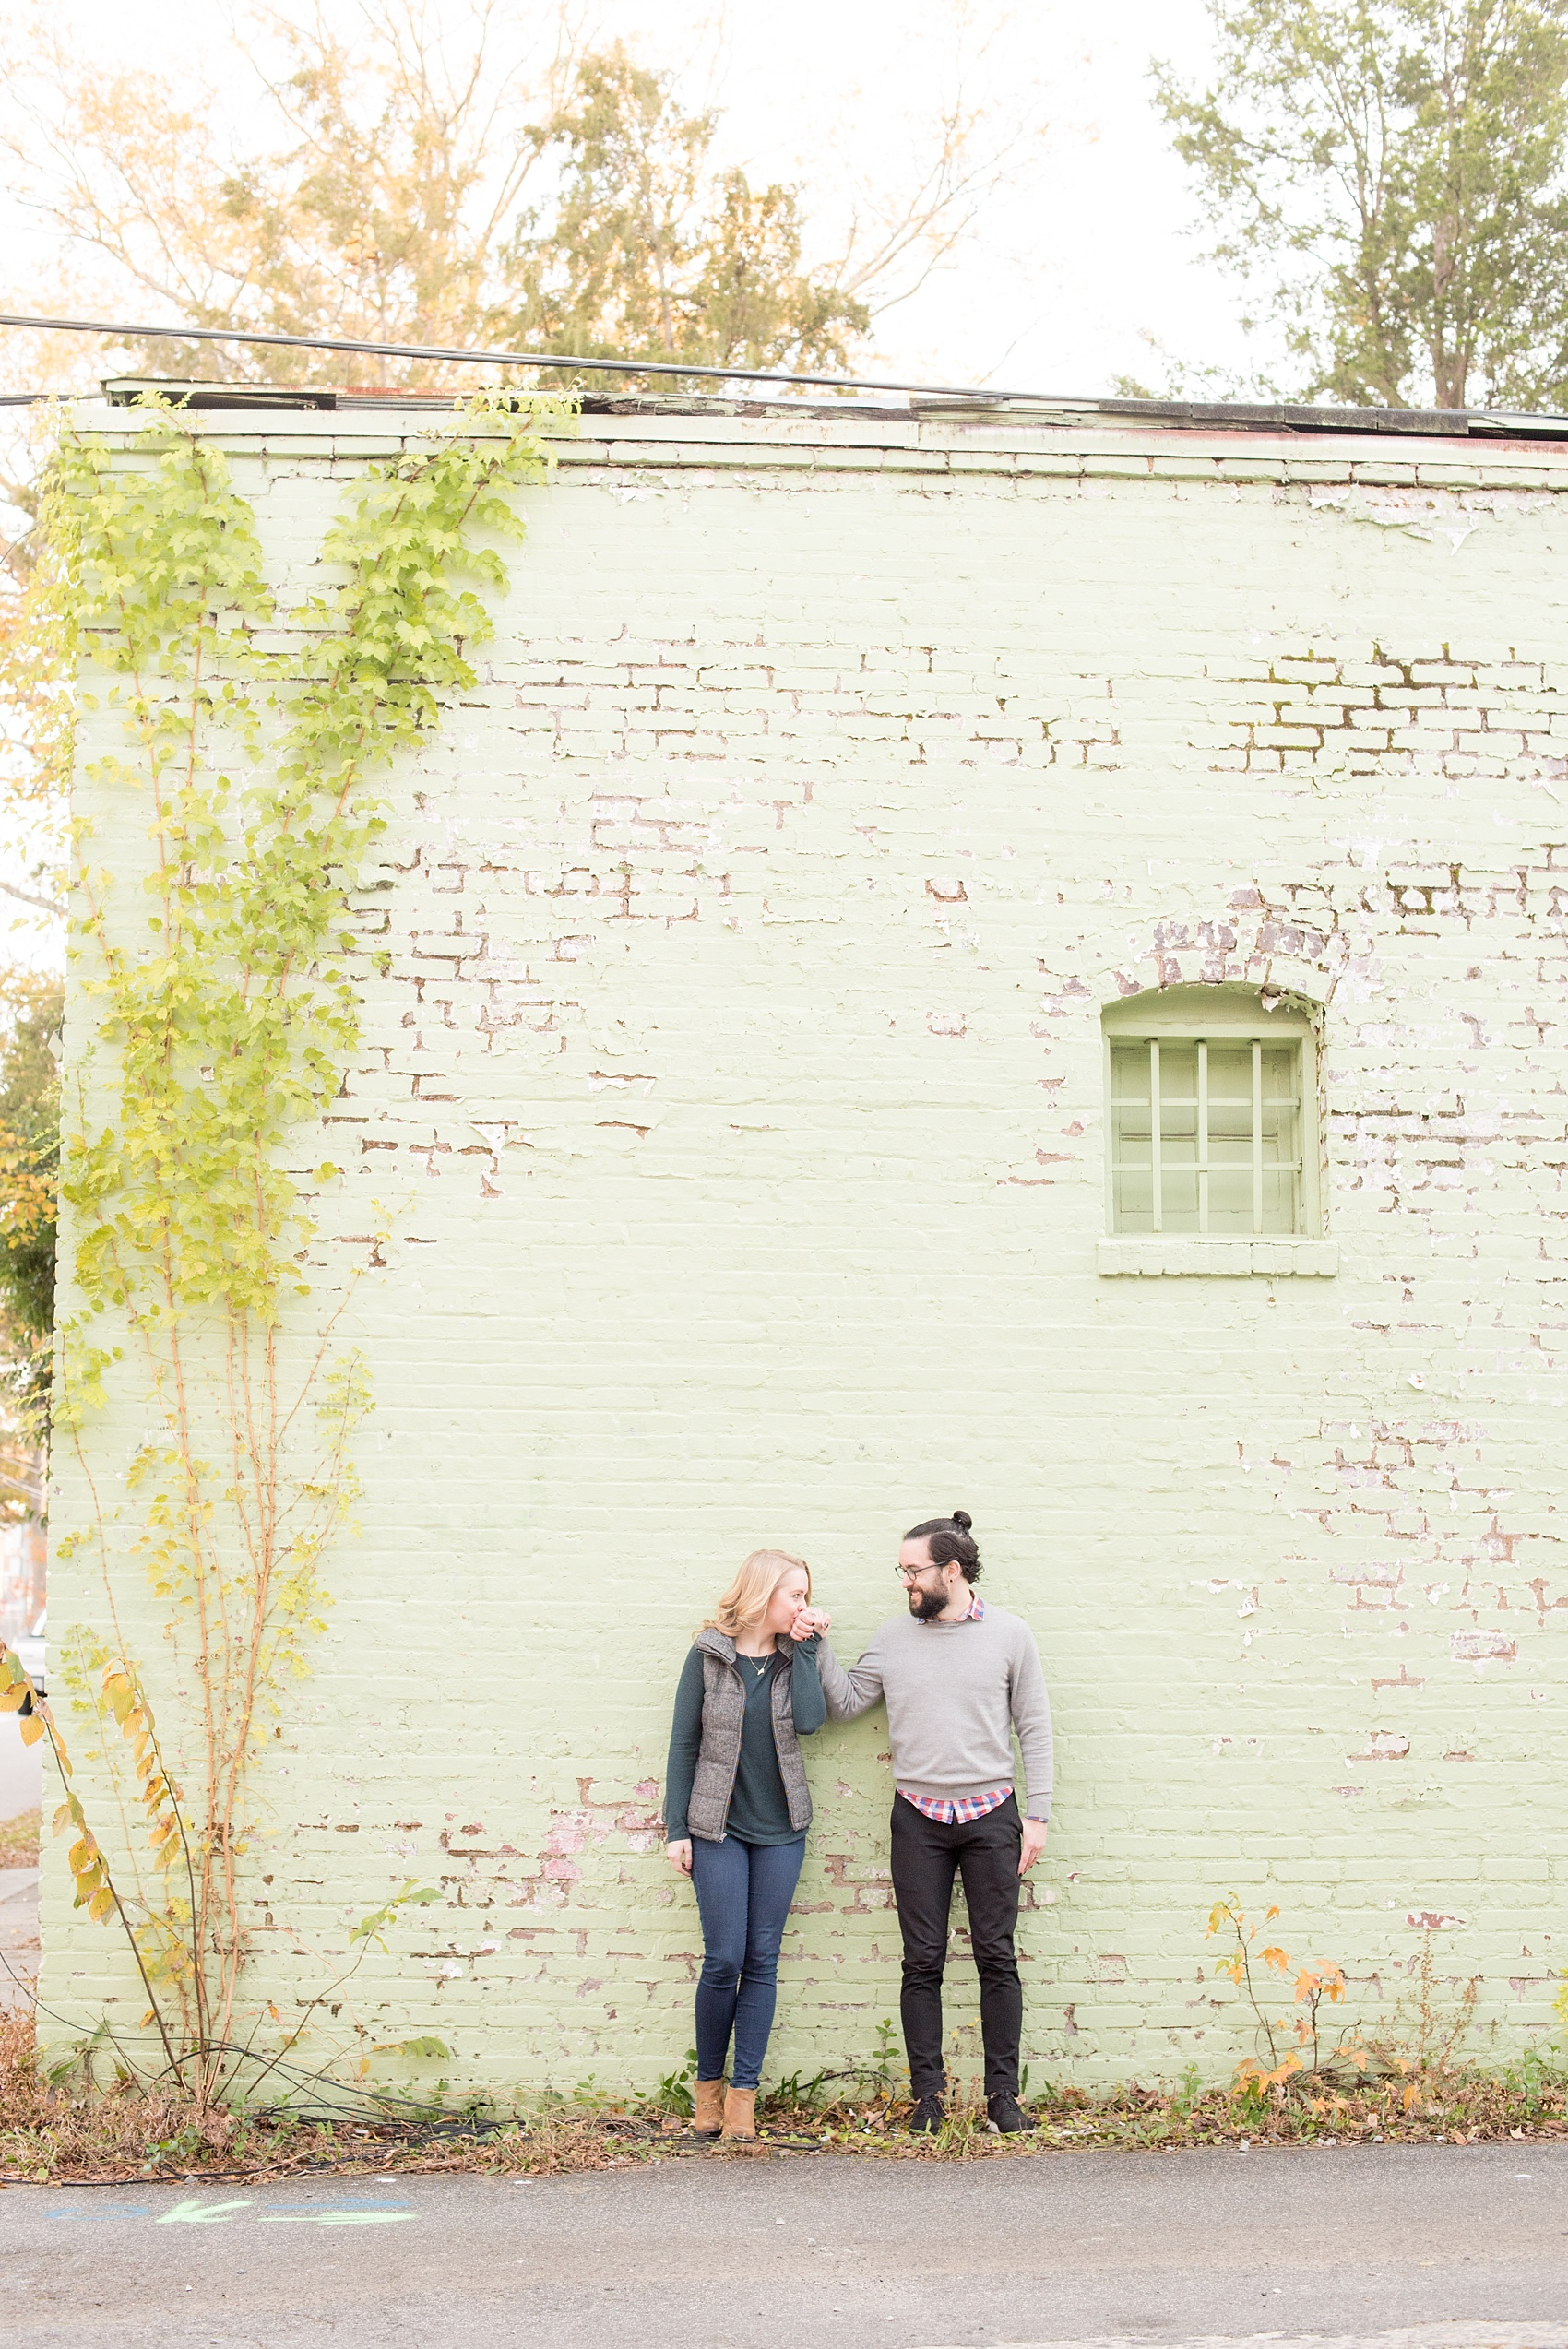 Mikkel Paige Photography photos of a downtown Durham engagement session.